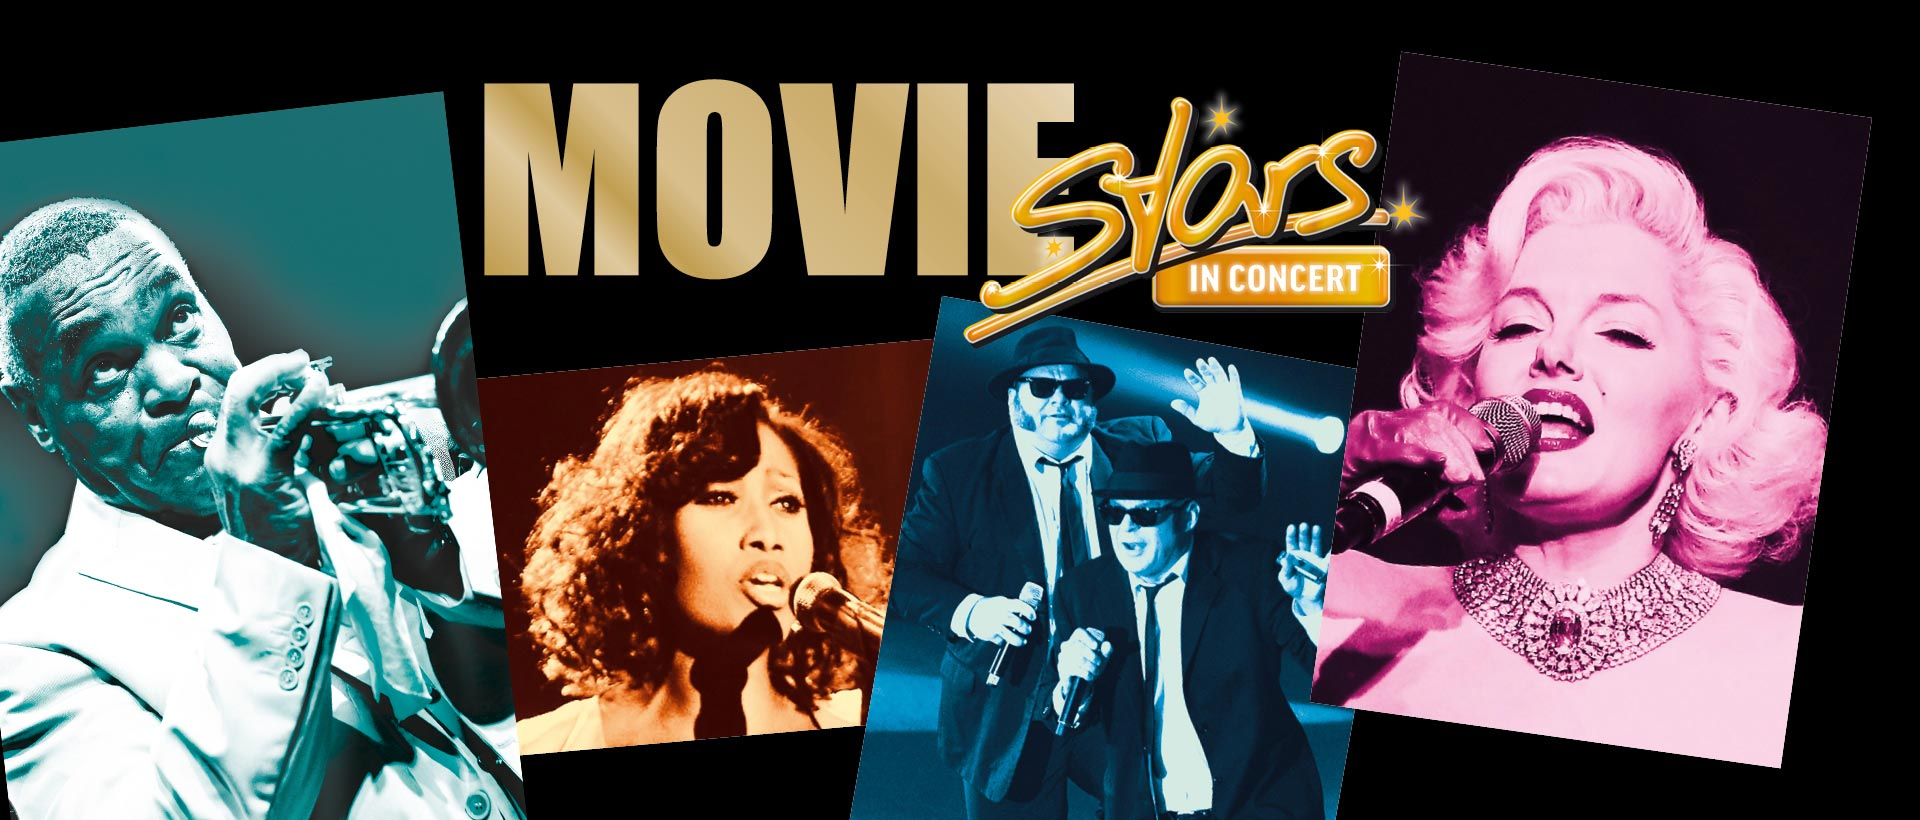 Stars in Concert Moviestars 02/12/ - 04/19/2020 canceled